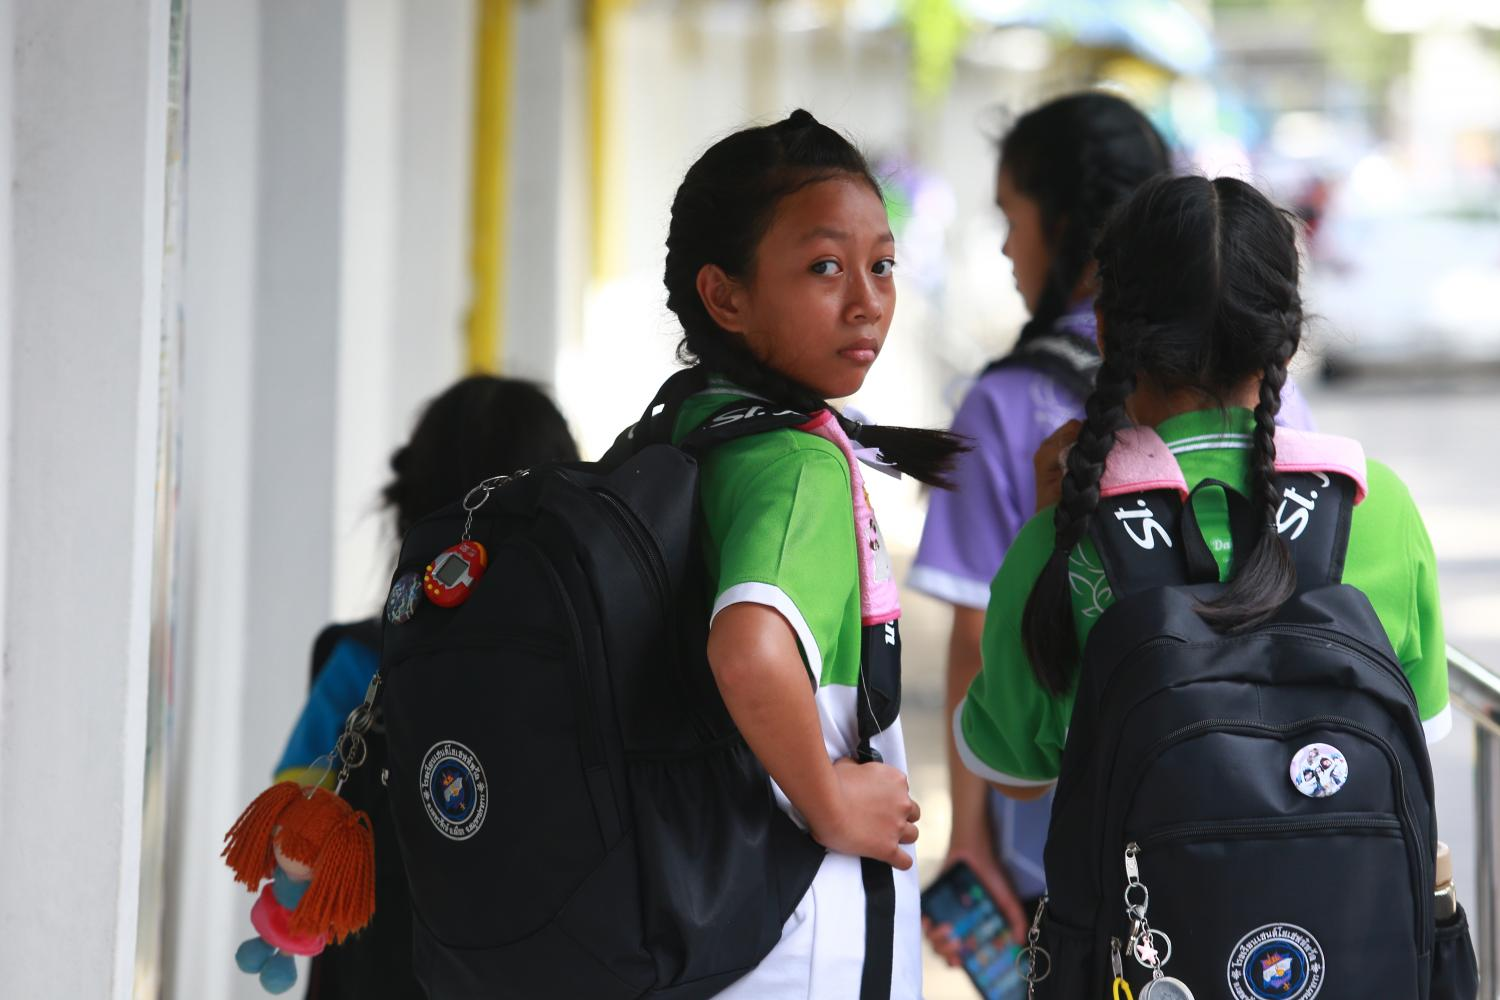 Launching financial education in Thailand's K-12 education may help cultivate a financially prudent society. (Photo by Somchai Poomlard)